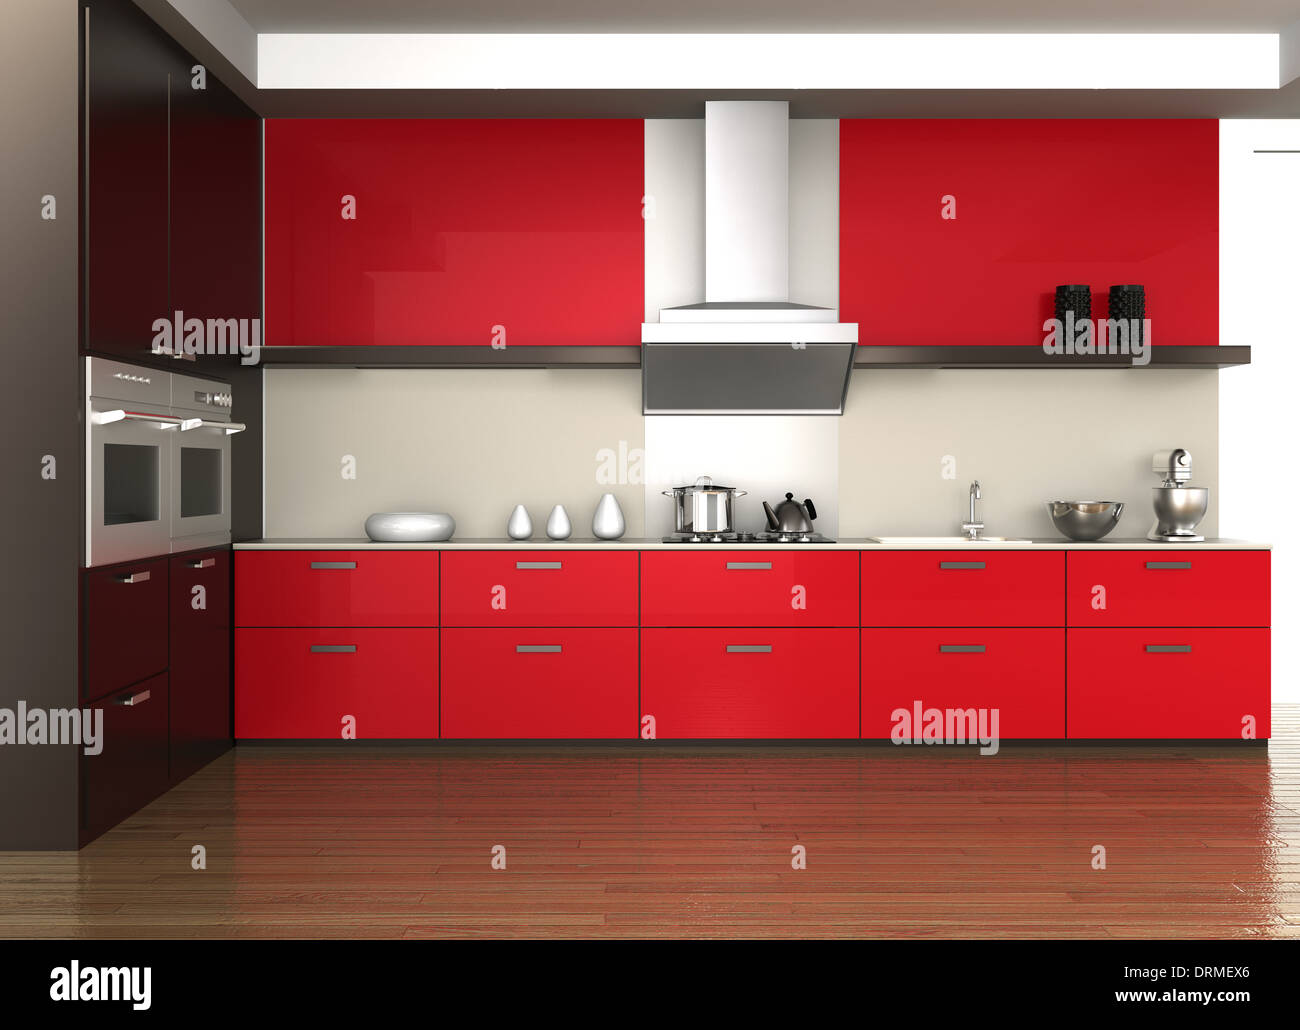 Modern Kitchen Interior With Wine Red Cabinet Color Stock Photo